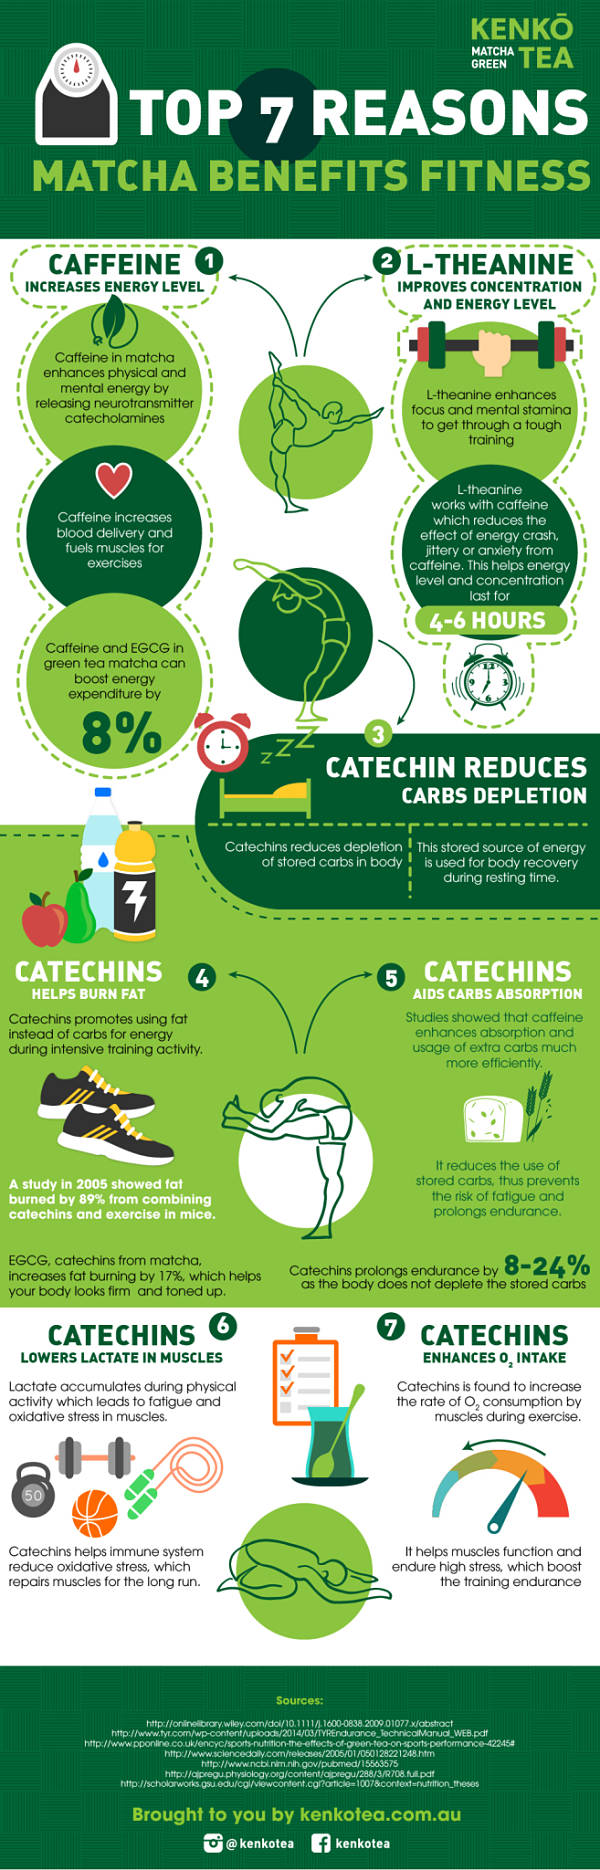 Top_7_Reasons_Matcha_Benefits_Fitness_infographic